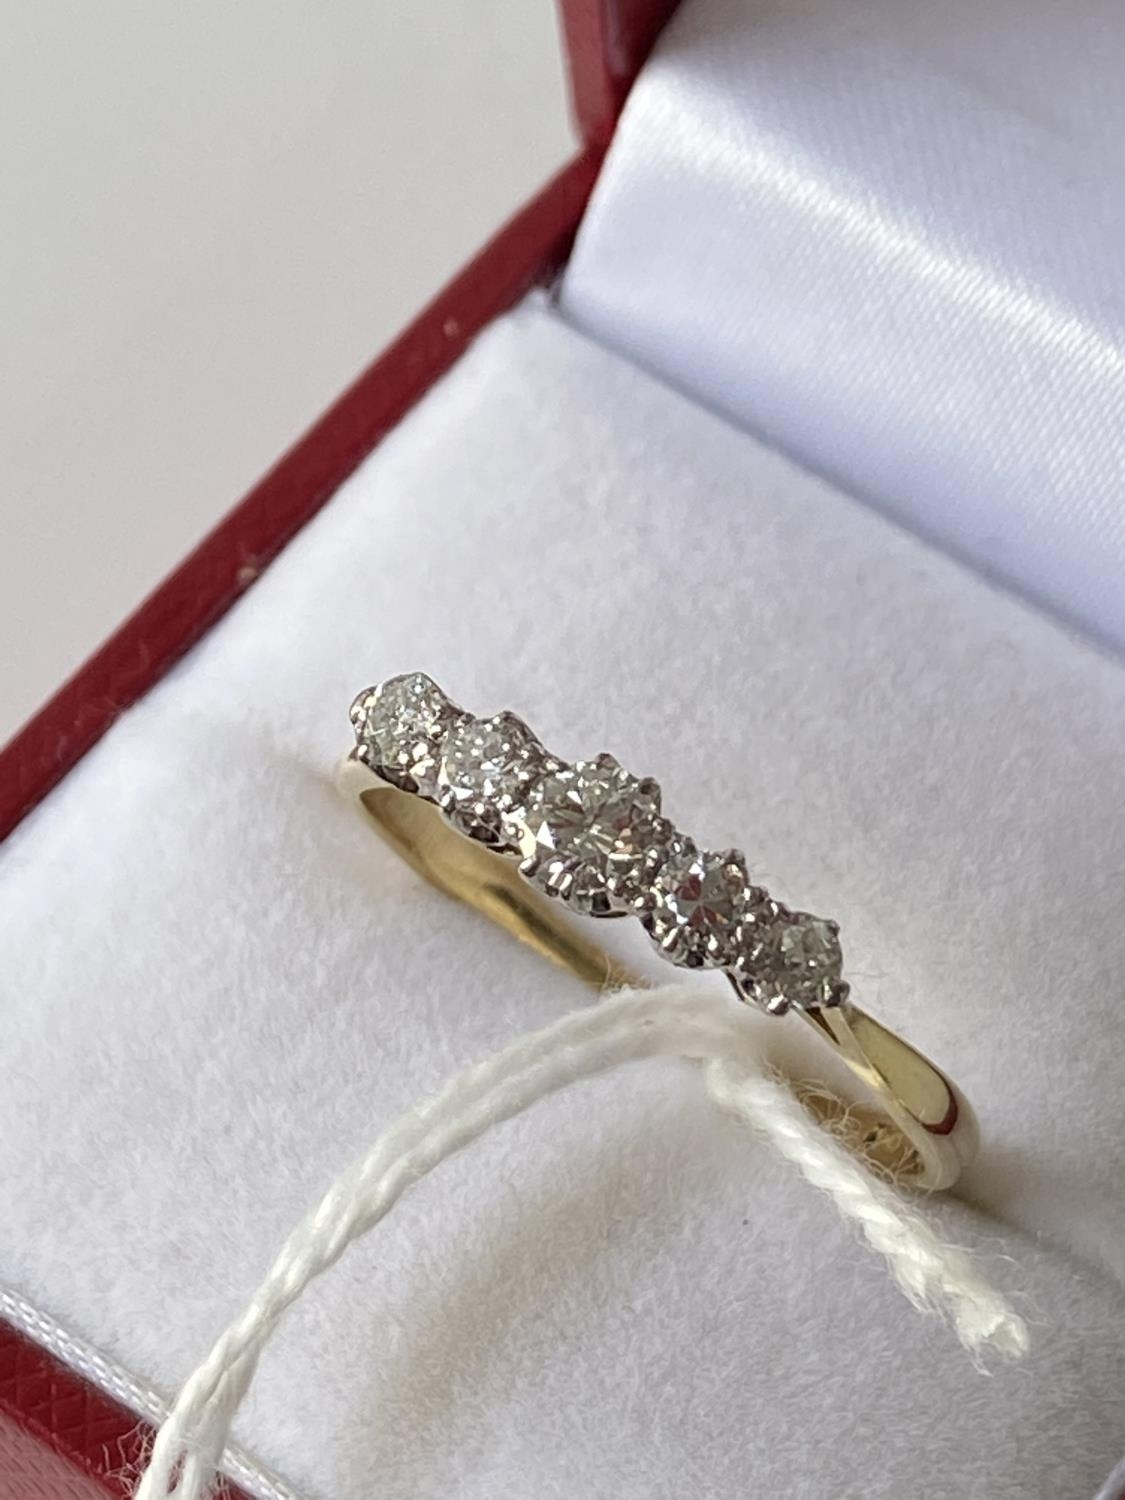 An 18ct gold ladies ring set with 5 brilliant white diamonds [1 inclusion] [size T] [2.73g] - Image 6 of 10